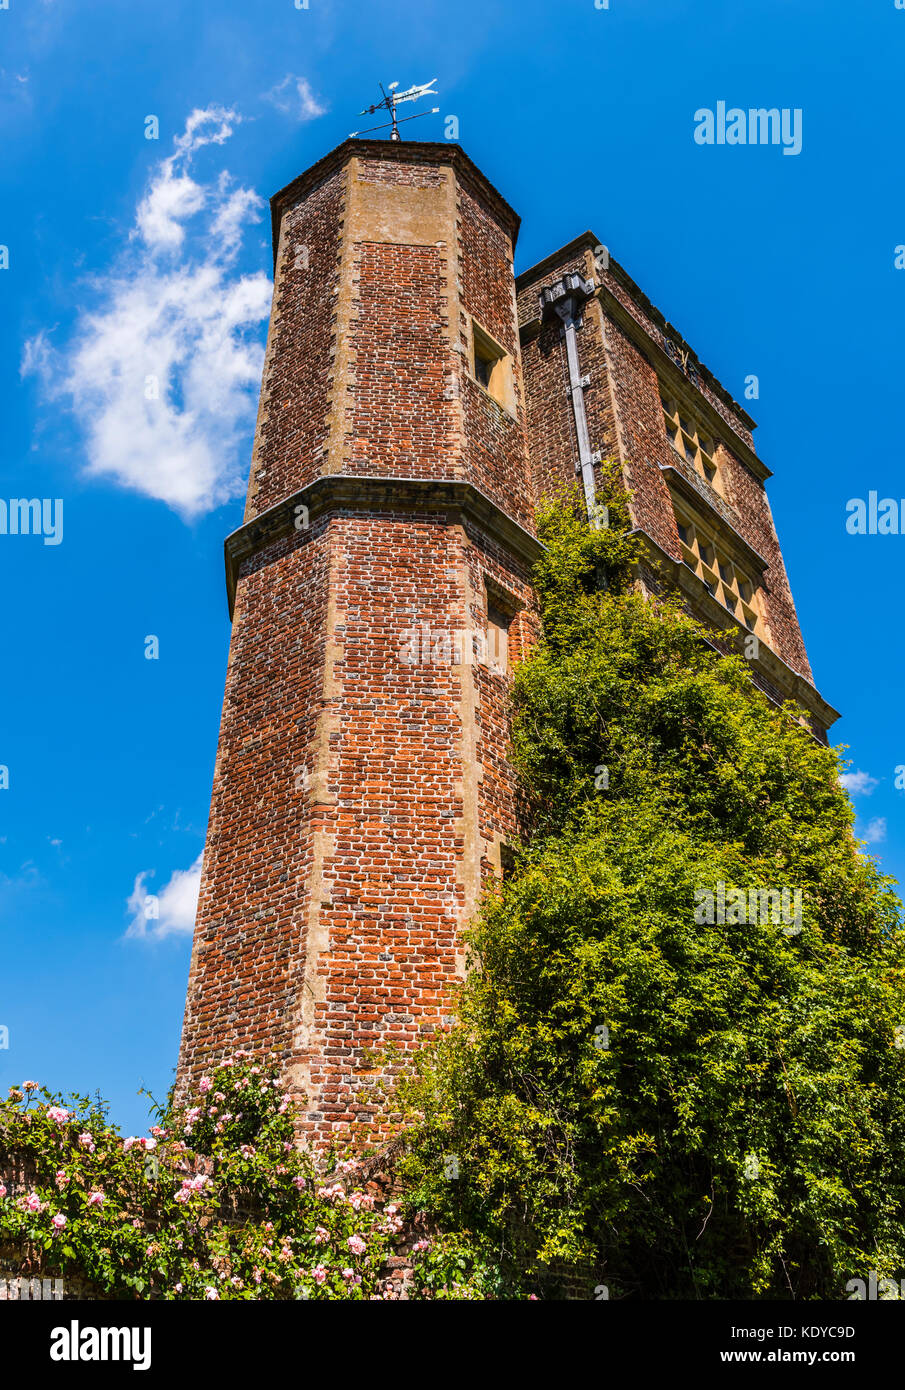 Castle towers at Sissinghurst Gardens, Kent, UK - Stock Image